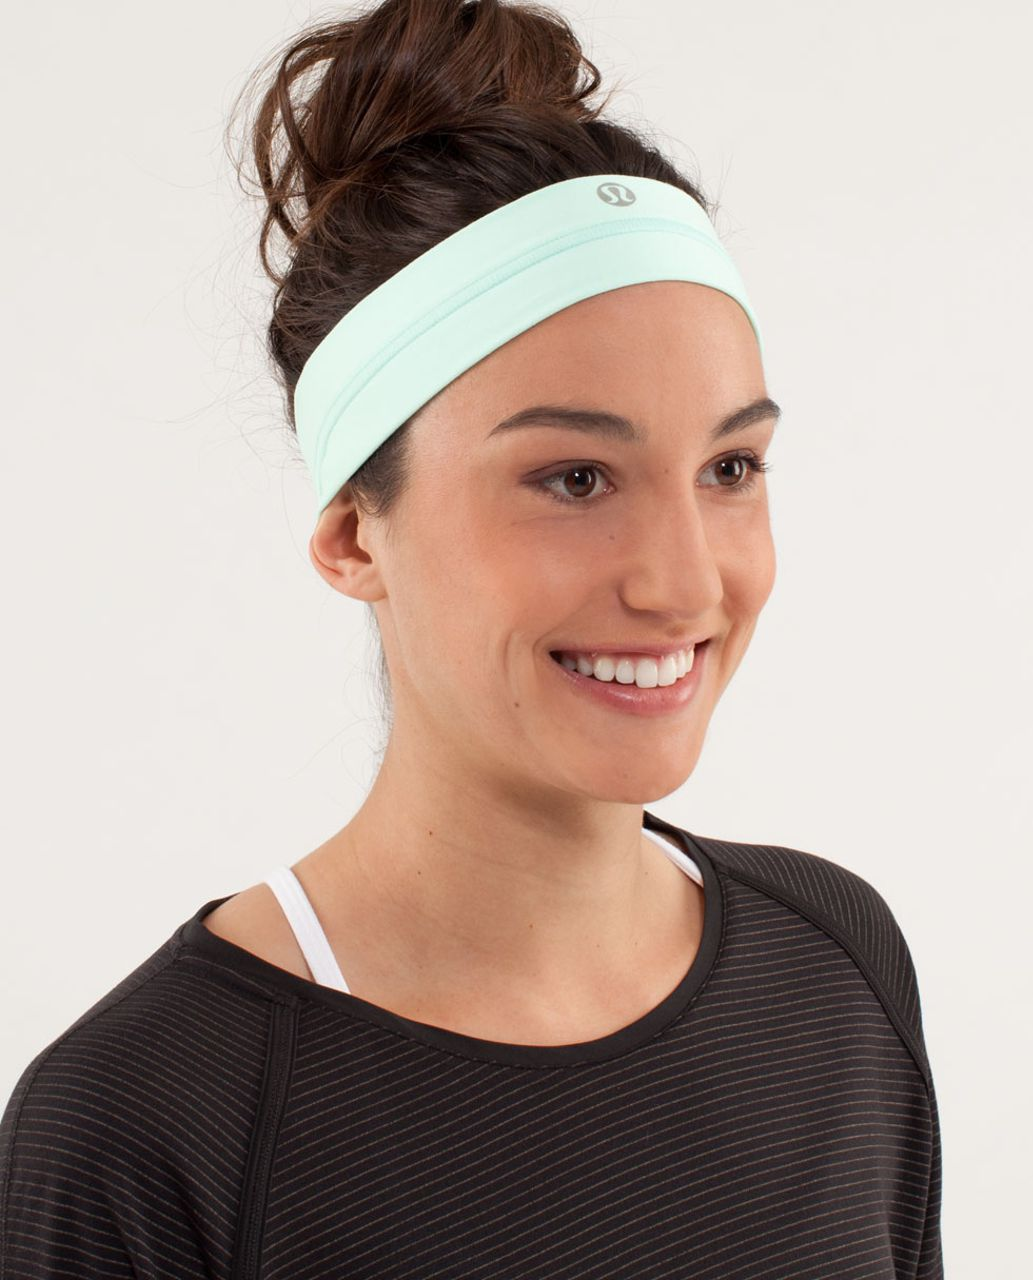 Lululemon Fly Away Tamer Headband - Mint Moment - lulu fanatics 01c16aba0bd